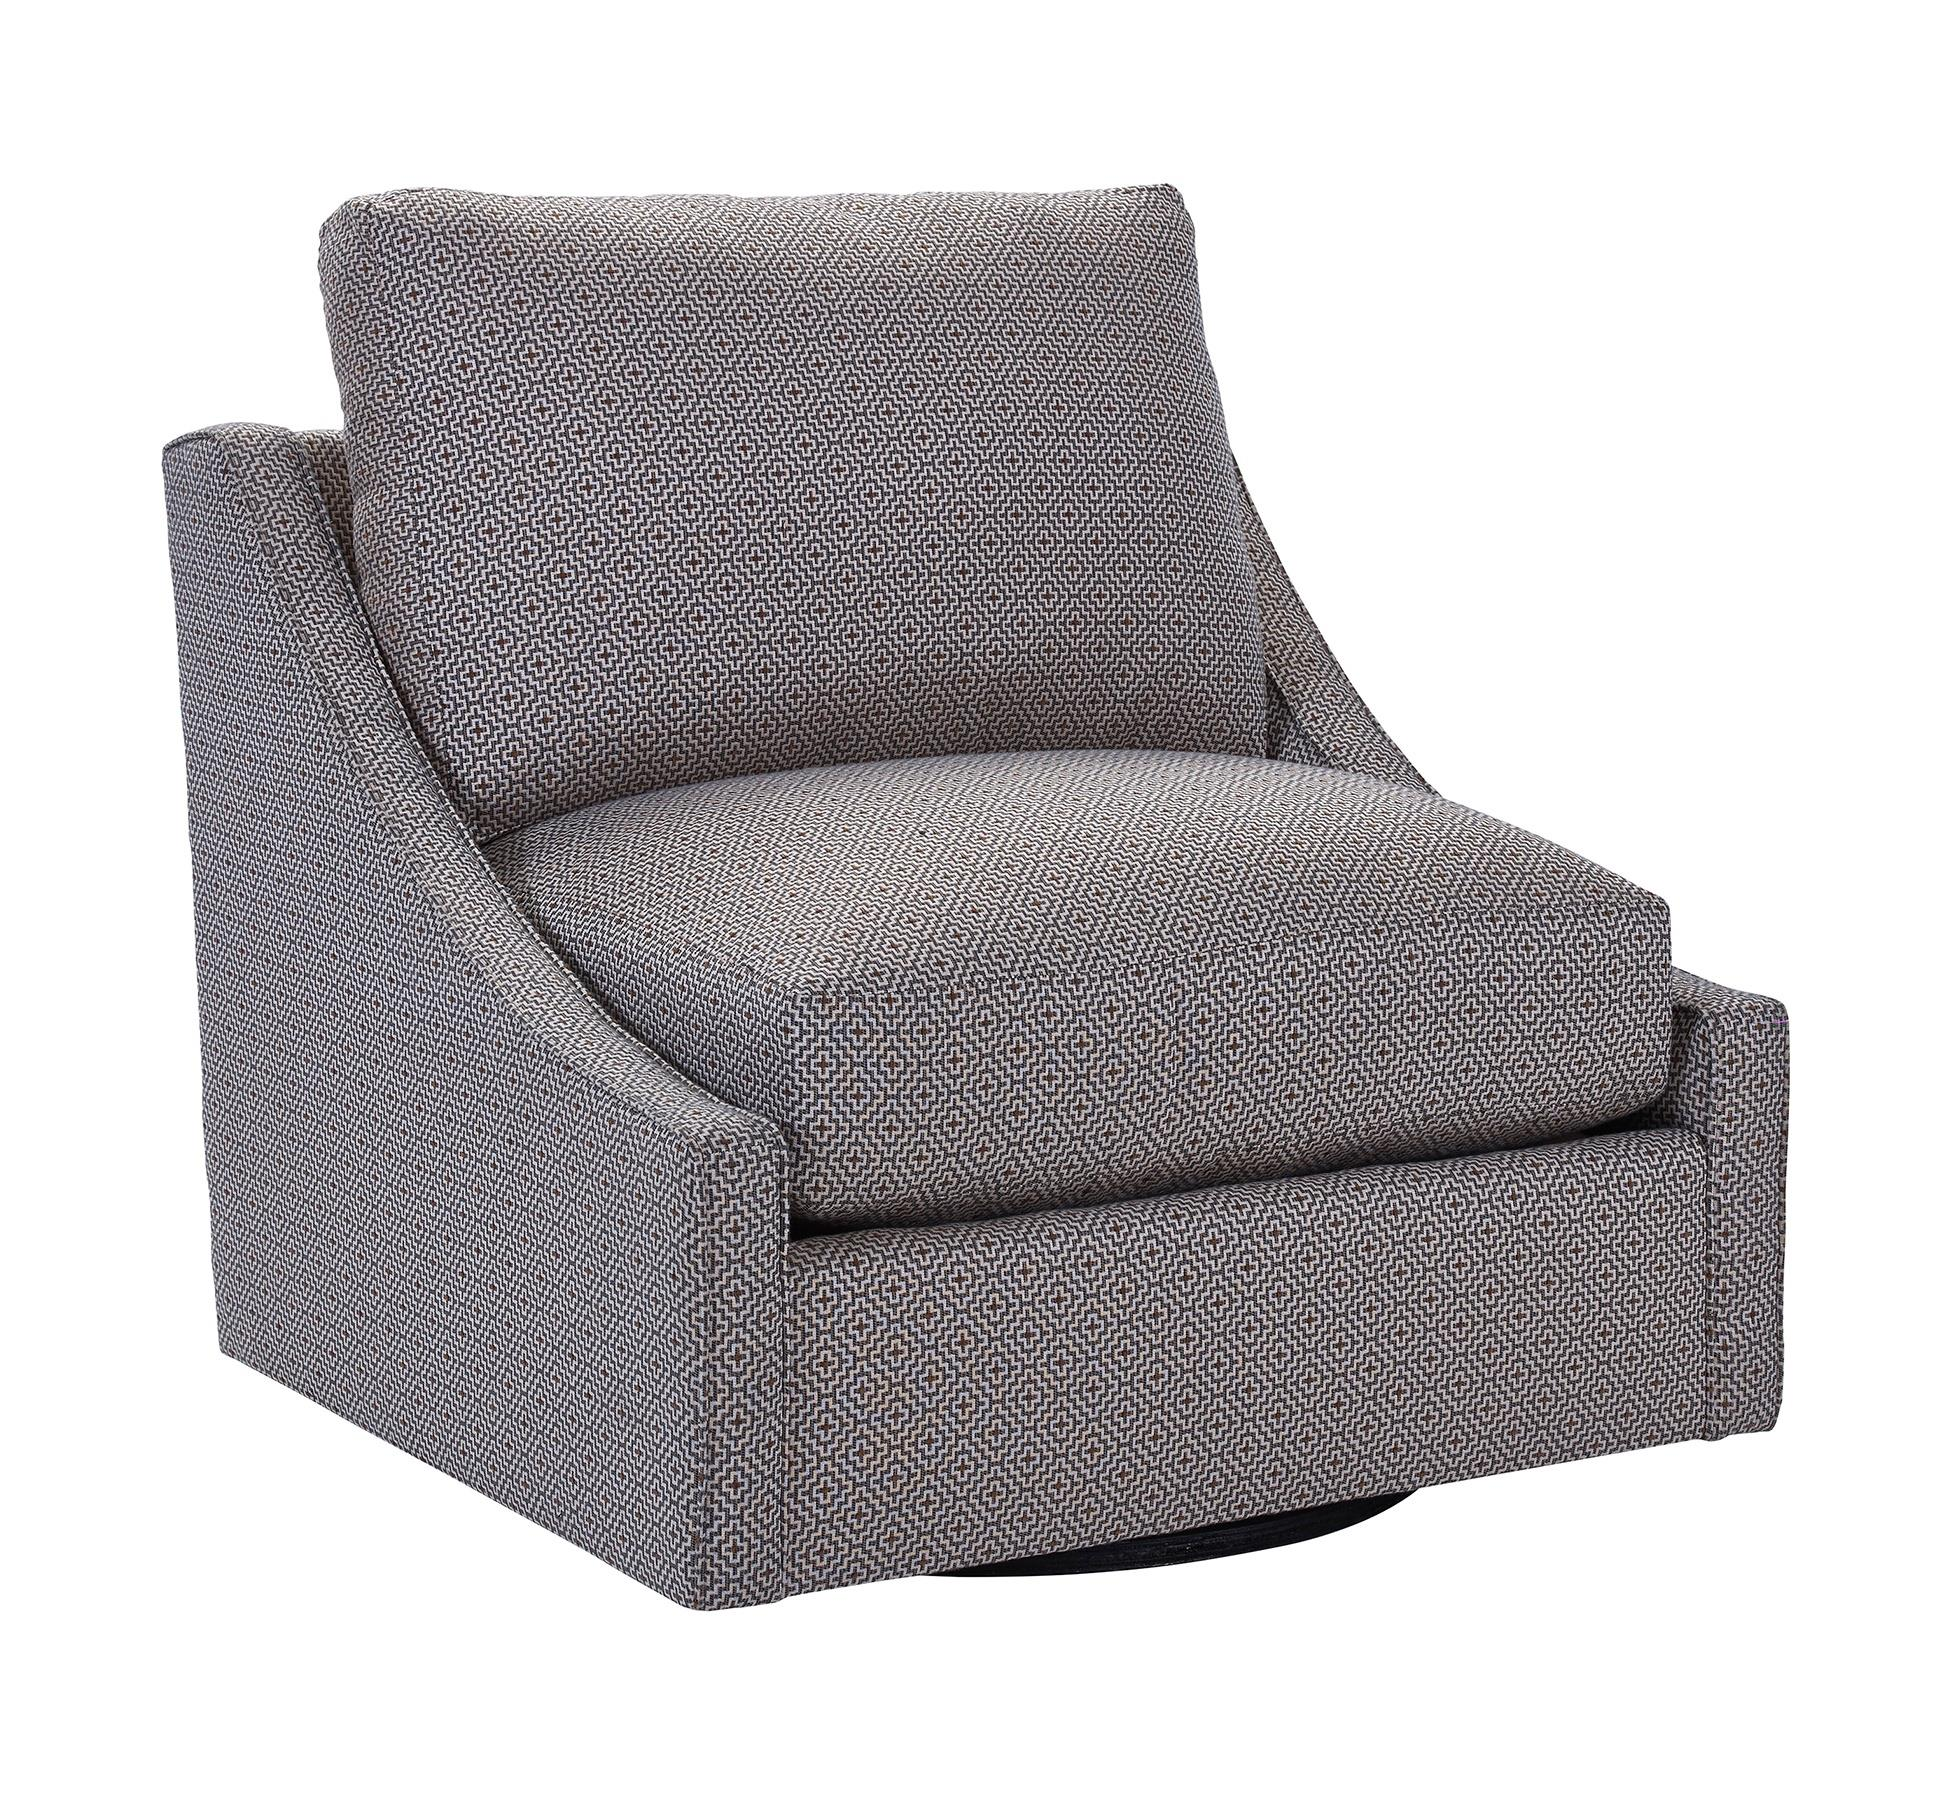 Broyhill Furniture Aldrin Swivel Chair & 1/2 - Item Number: 9070-8-4605-93